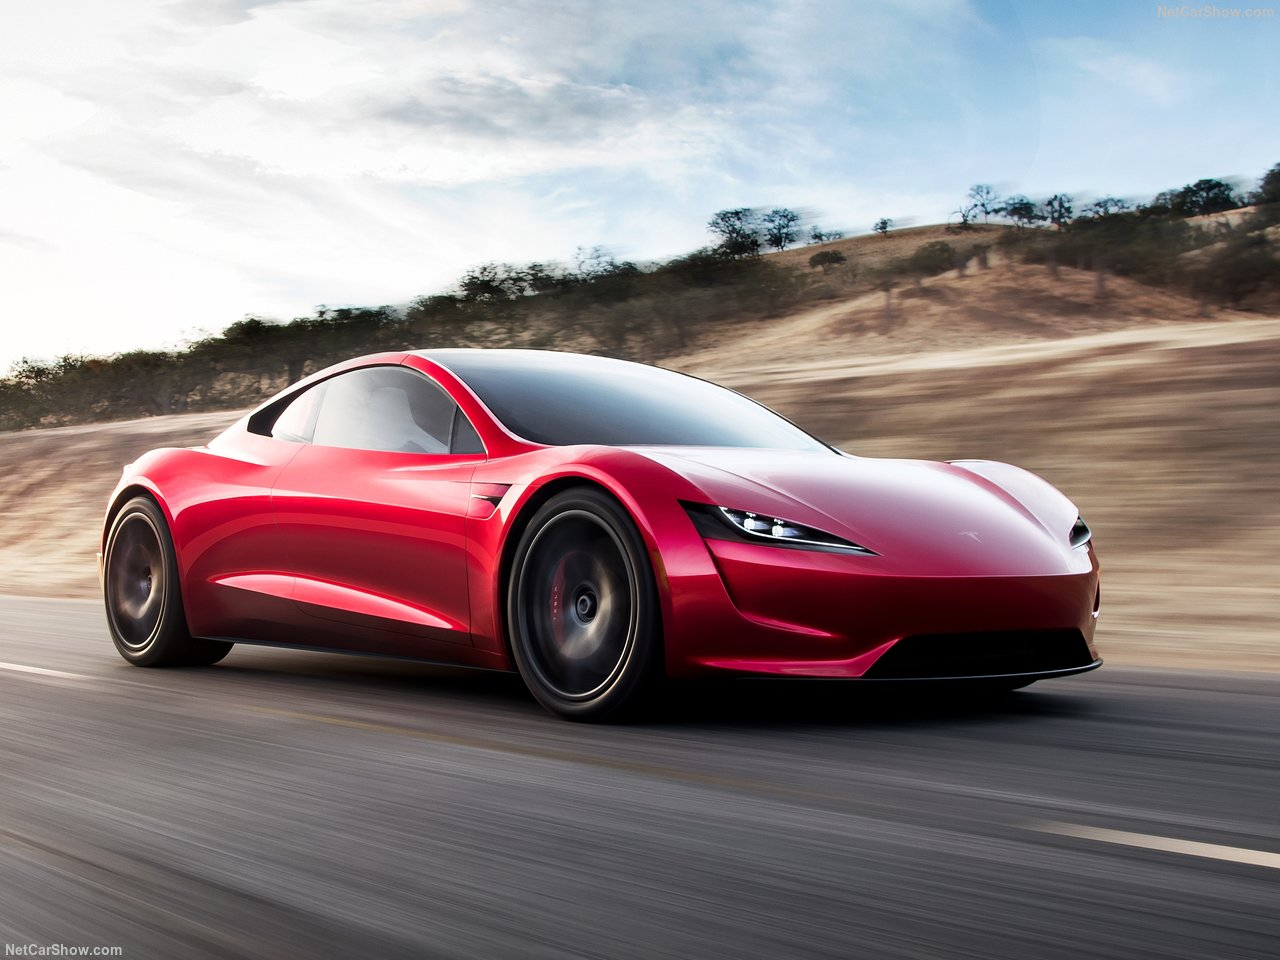 Tesla Roadster cruising